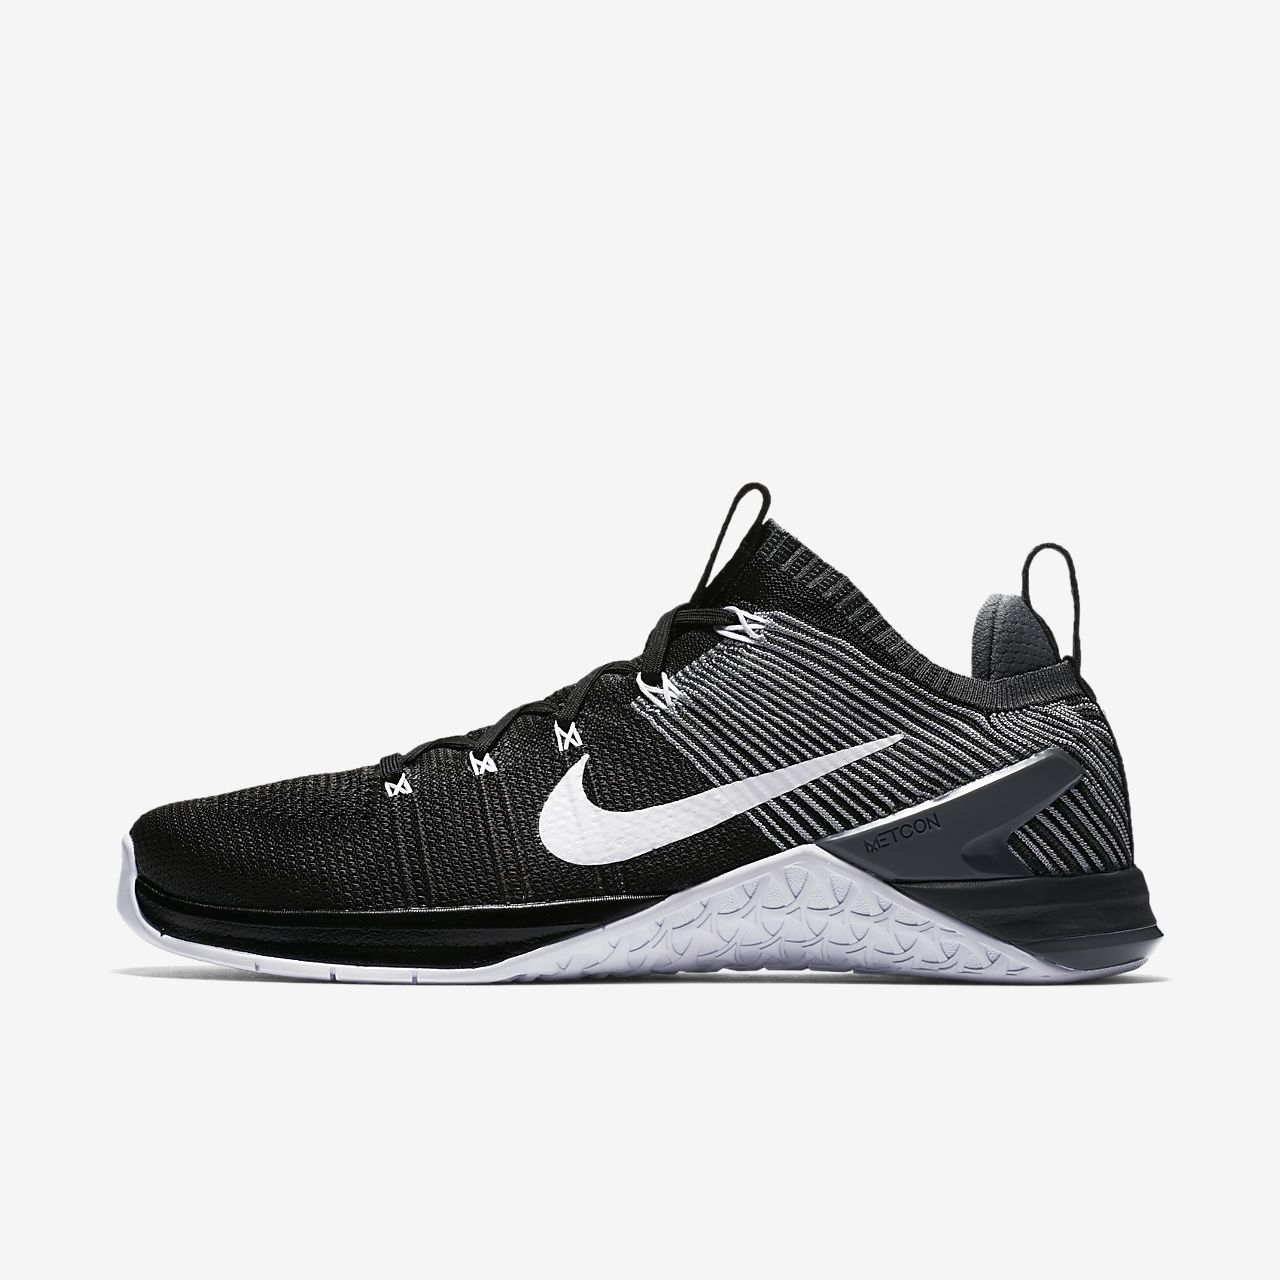 Metcon Dsx 2 Flyknit And Rubber Sneakers Nike